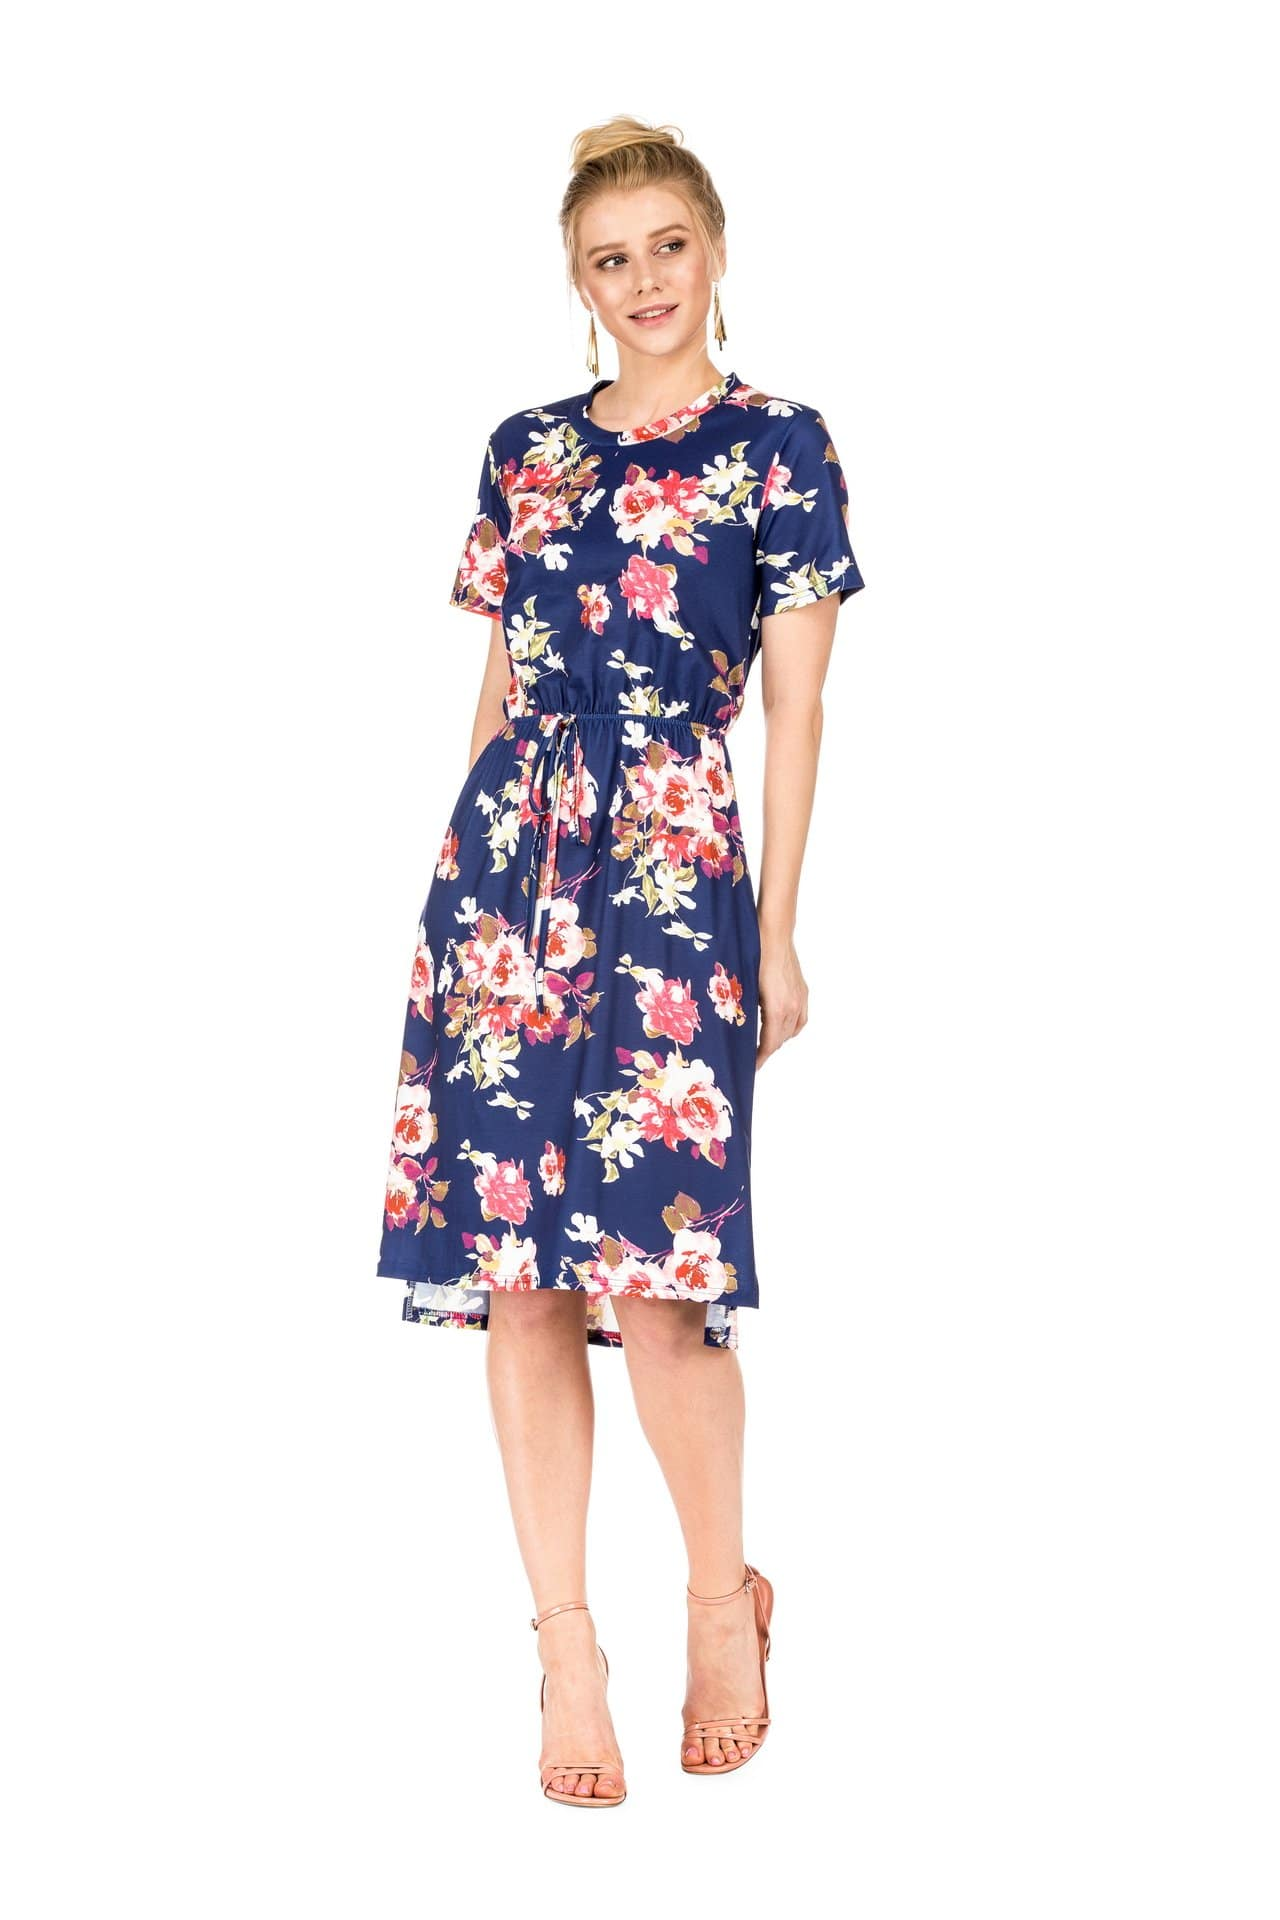 DAILYHAUTE Women's dress NAVY / S Haute Edition Women's Floral Casual Mid Dress With Pockets